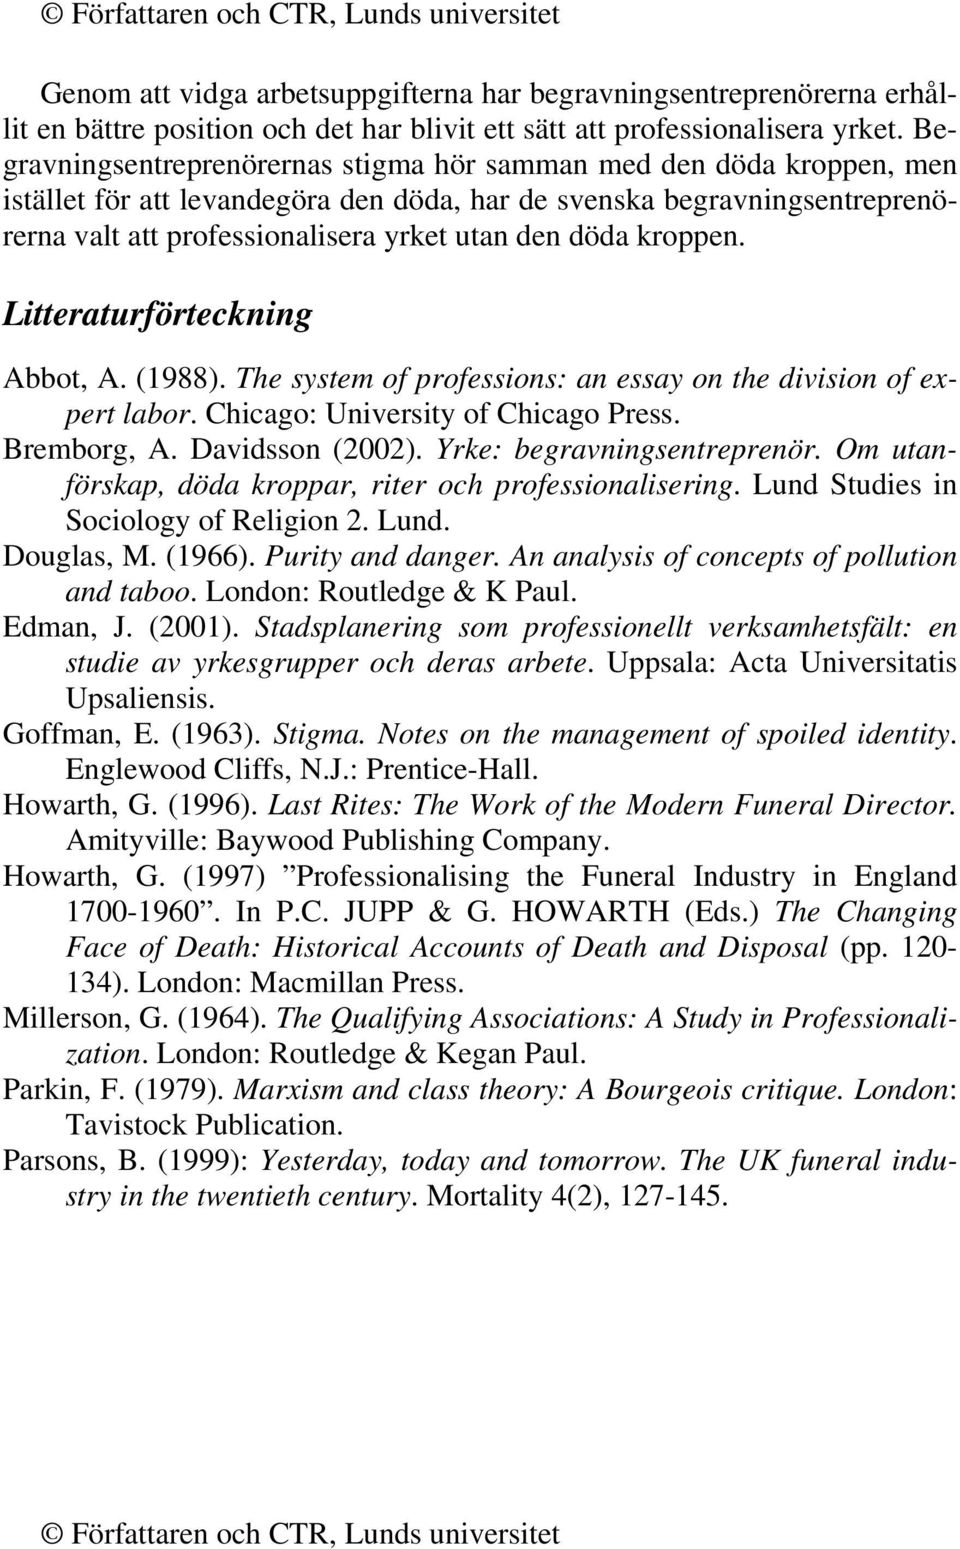 kroppen. Litteraturförteckning Abbot, A. (1988). The system of professions: an essay on the division of expert labor. Chicago: University of Chicago Press. Bremborg, A. Davidsson (2002).